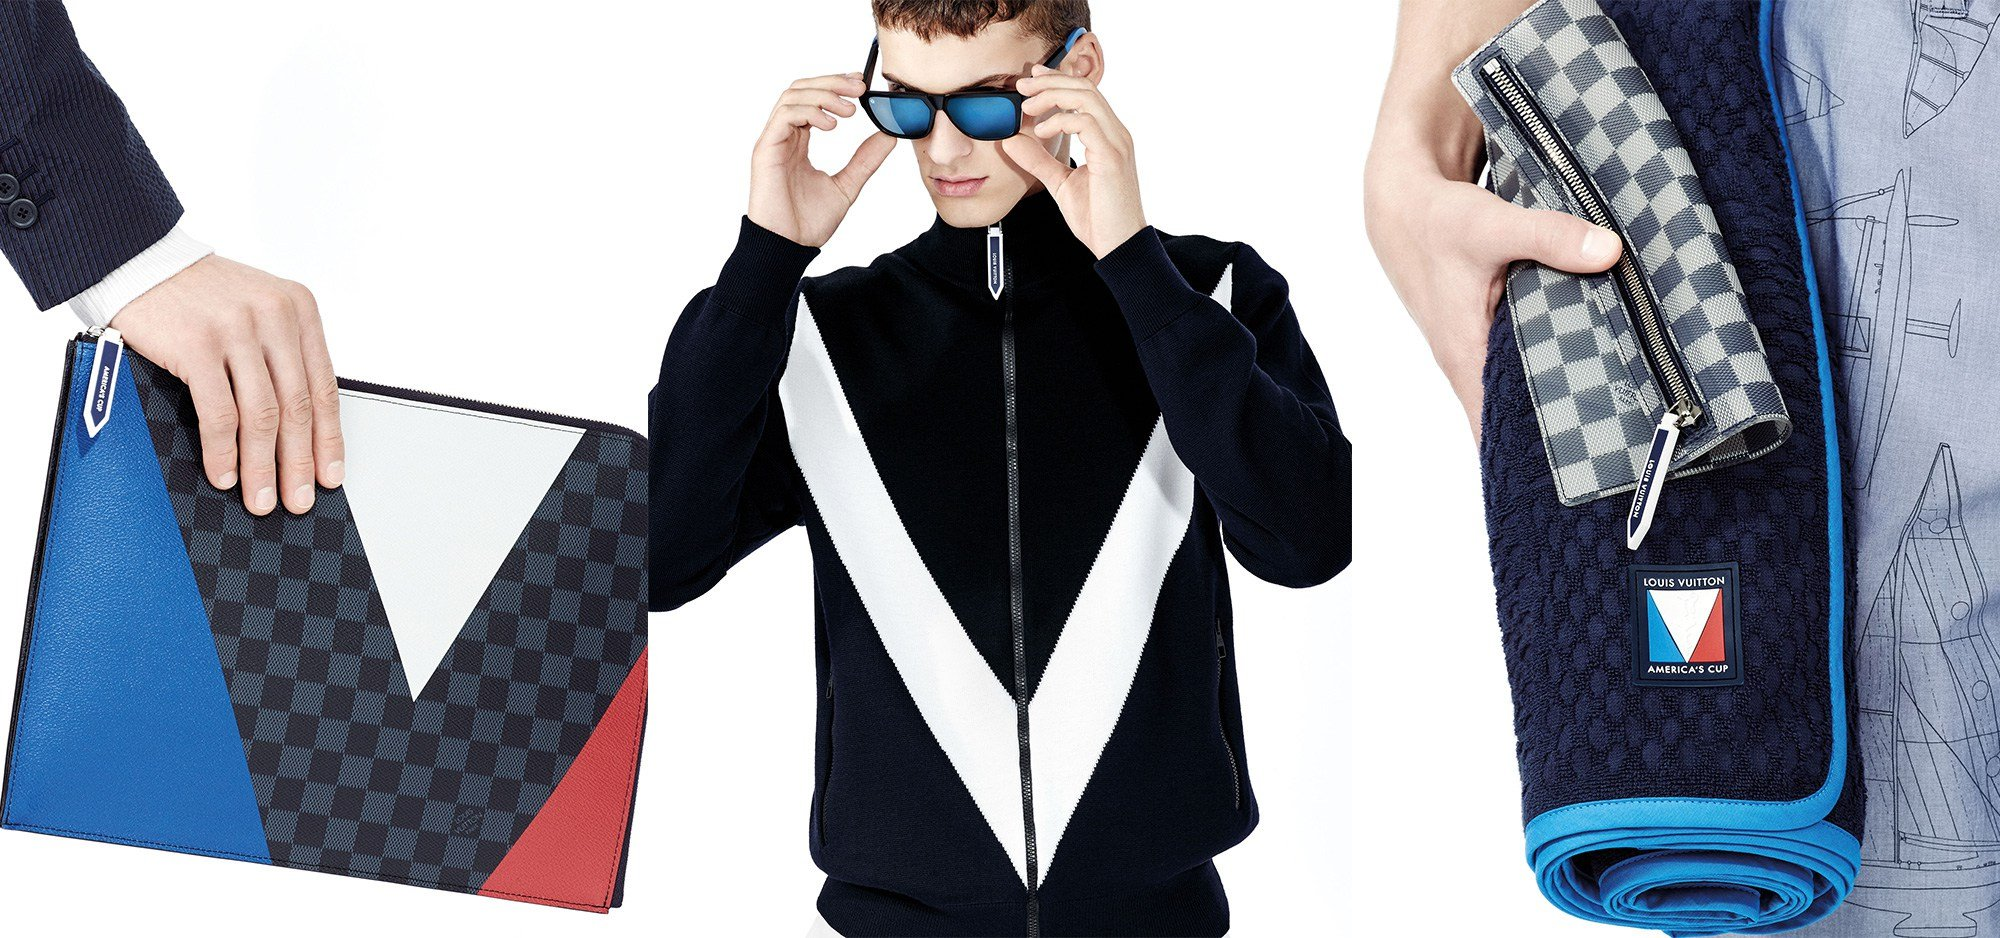 ce43b58037d5 Louis Vuitton debuts America s Cup inspired menswear collection -